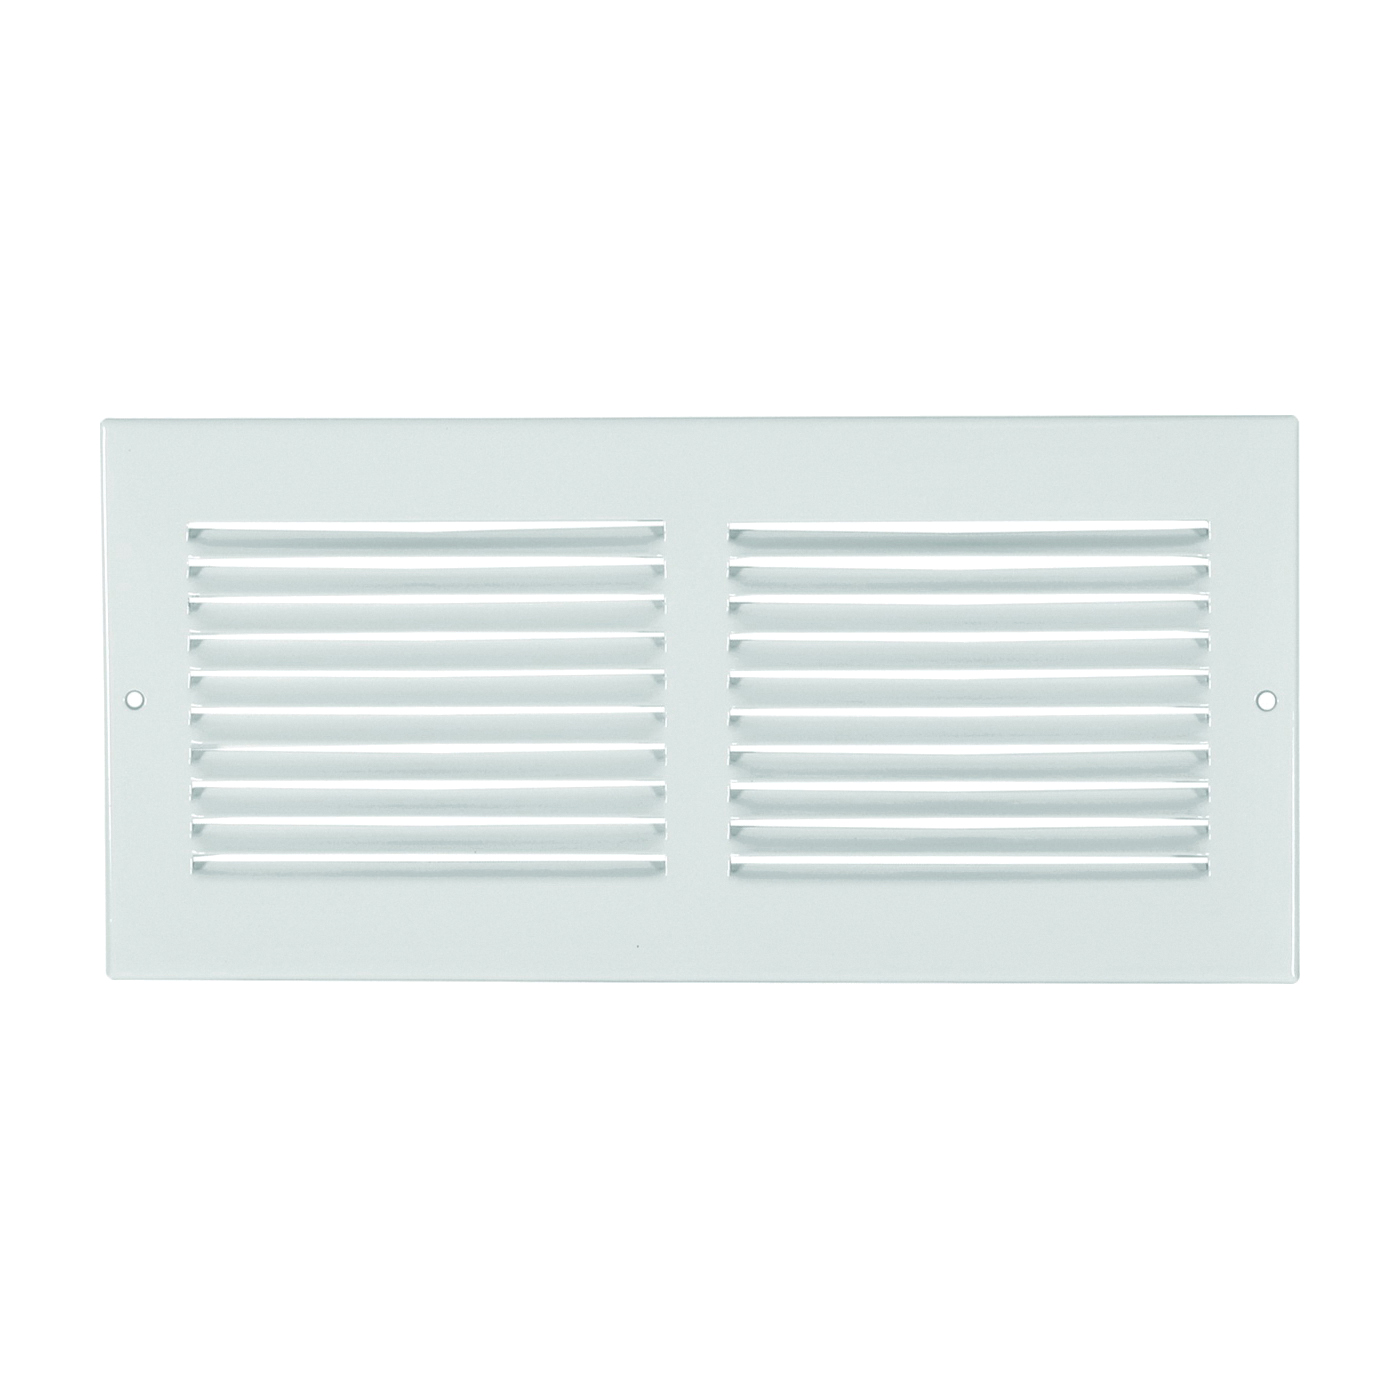 Picture of Imperial RG0513 Sidewall Grille, 25-1/4 in L, 7-1/4 in W, Steel, White